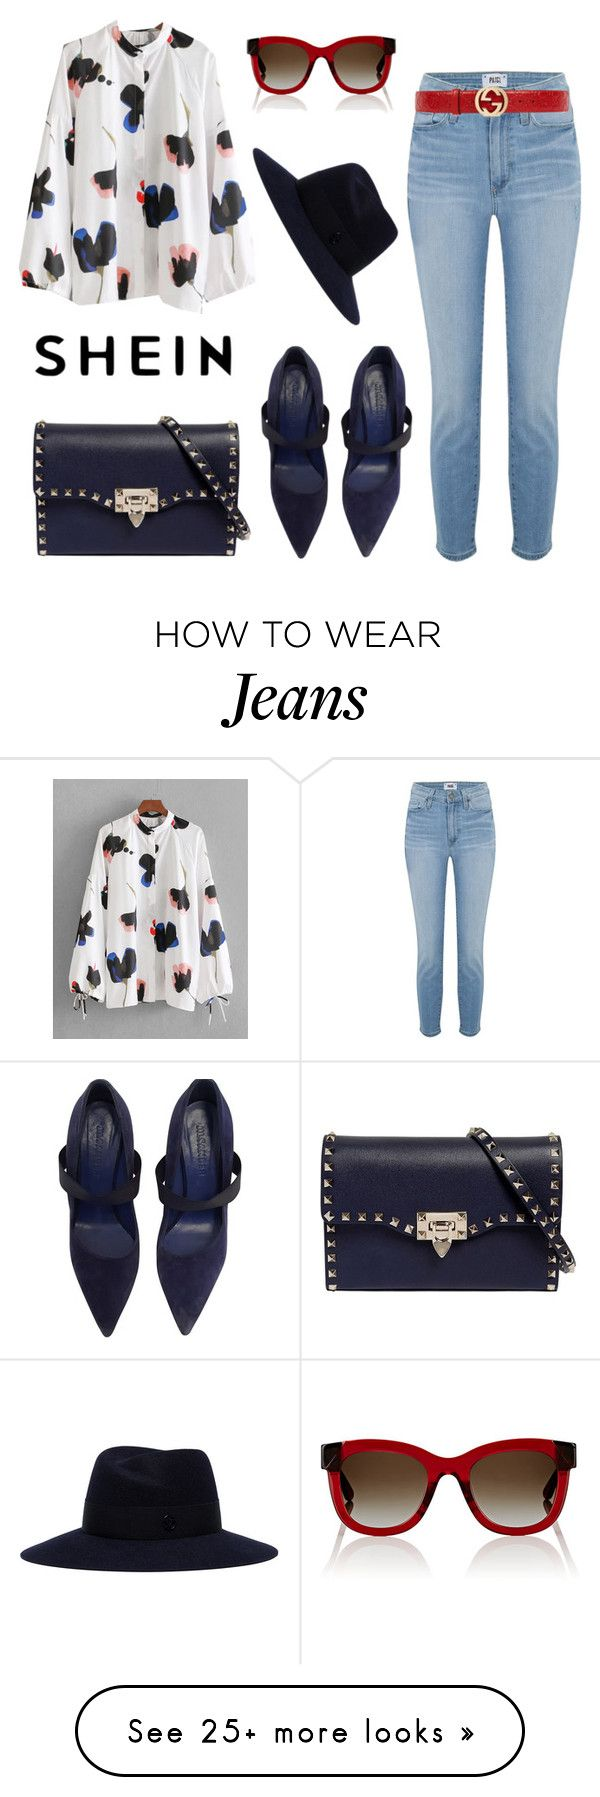 """Shein"" by daisy-schilder on Polyvore featuring Paige Denim, Thierry Lasry, Valentino, Jil Sander, Gucci and Maison Michel"